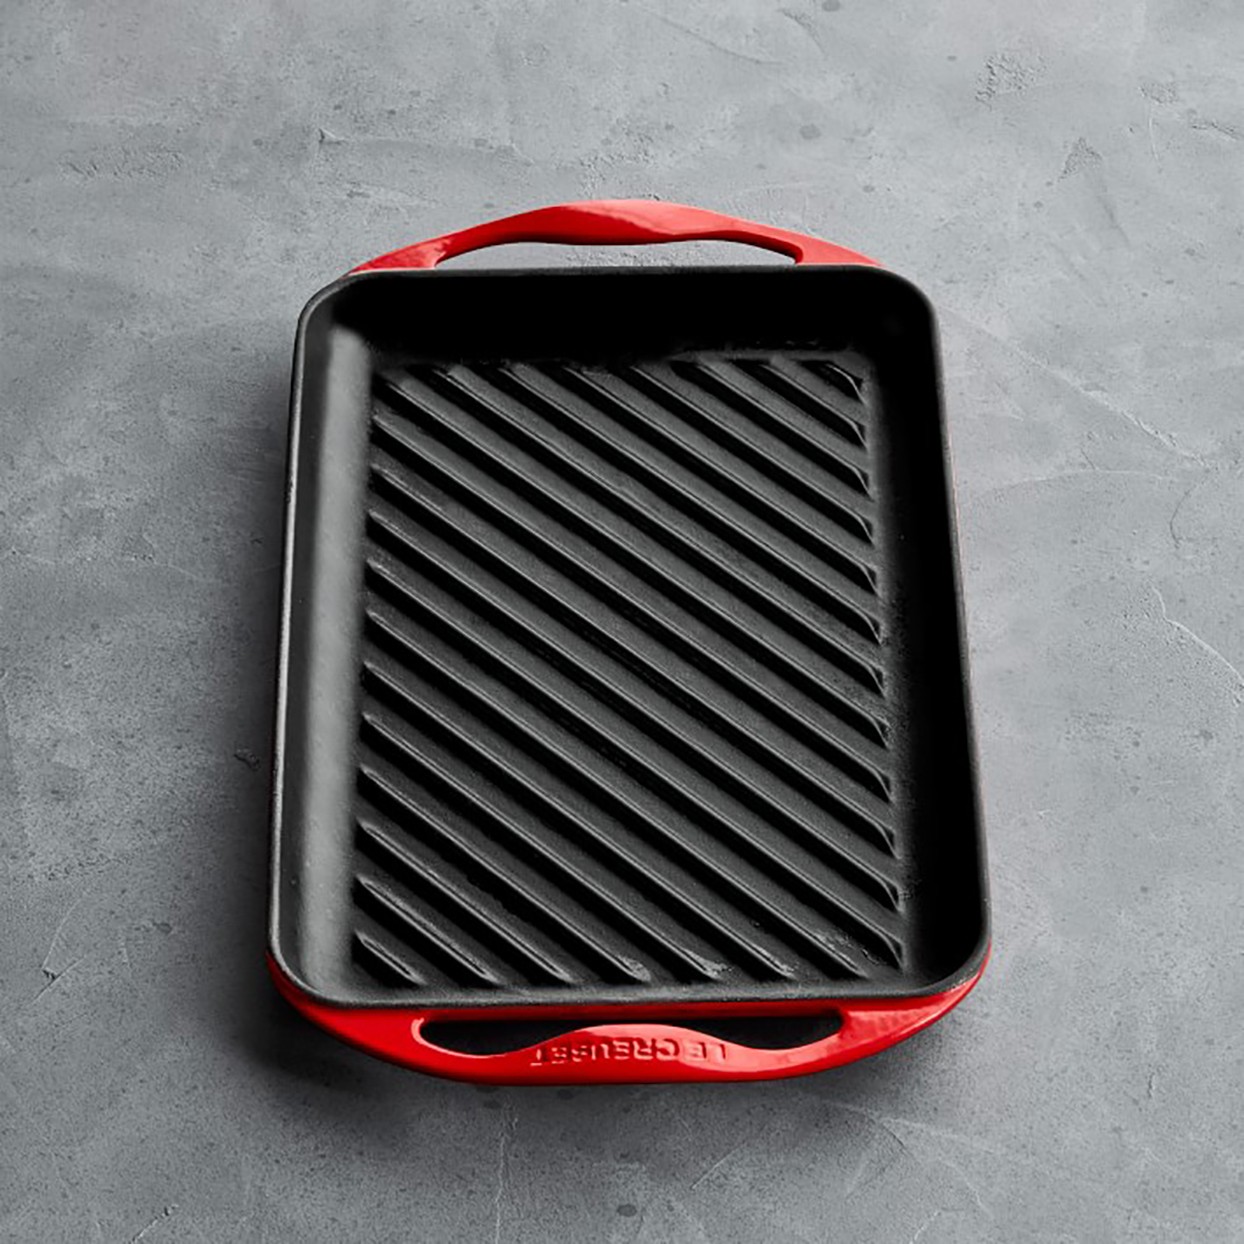 Le Creuset's skinny grill in red